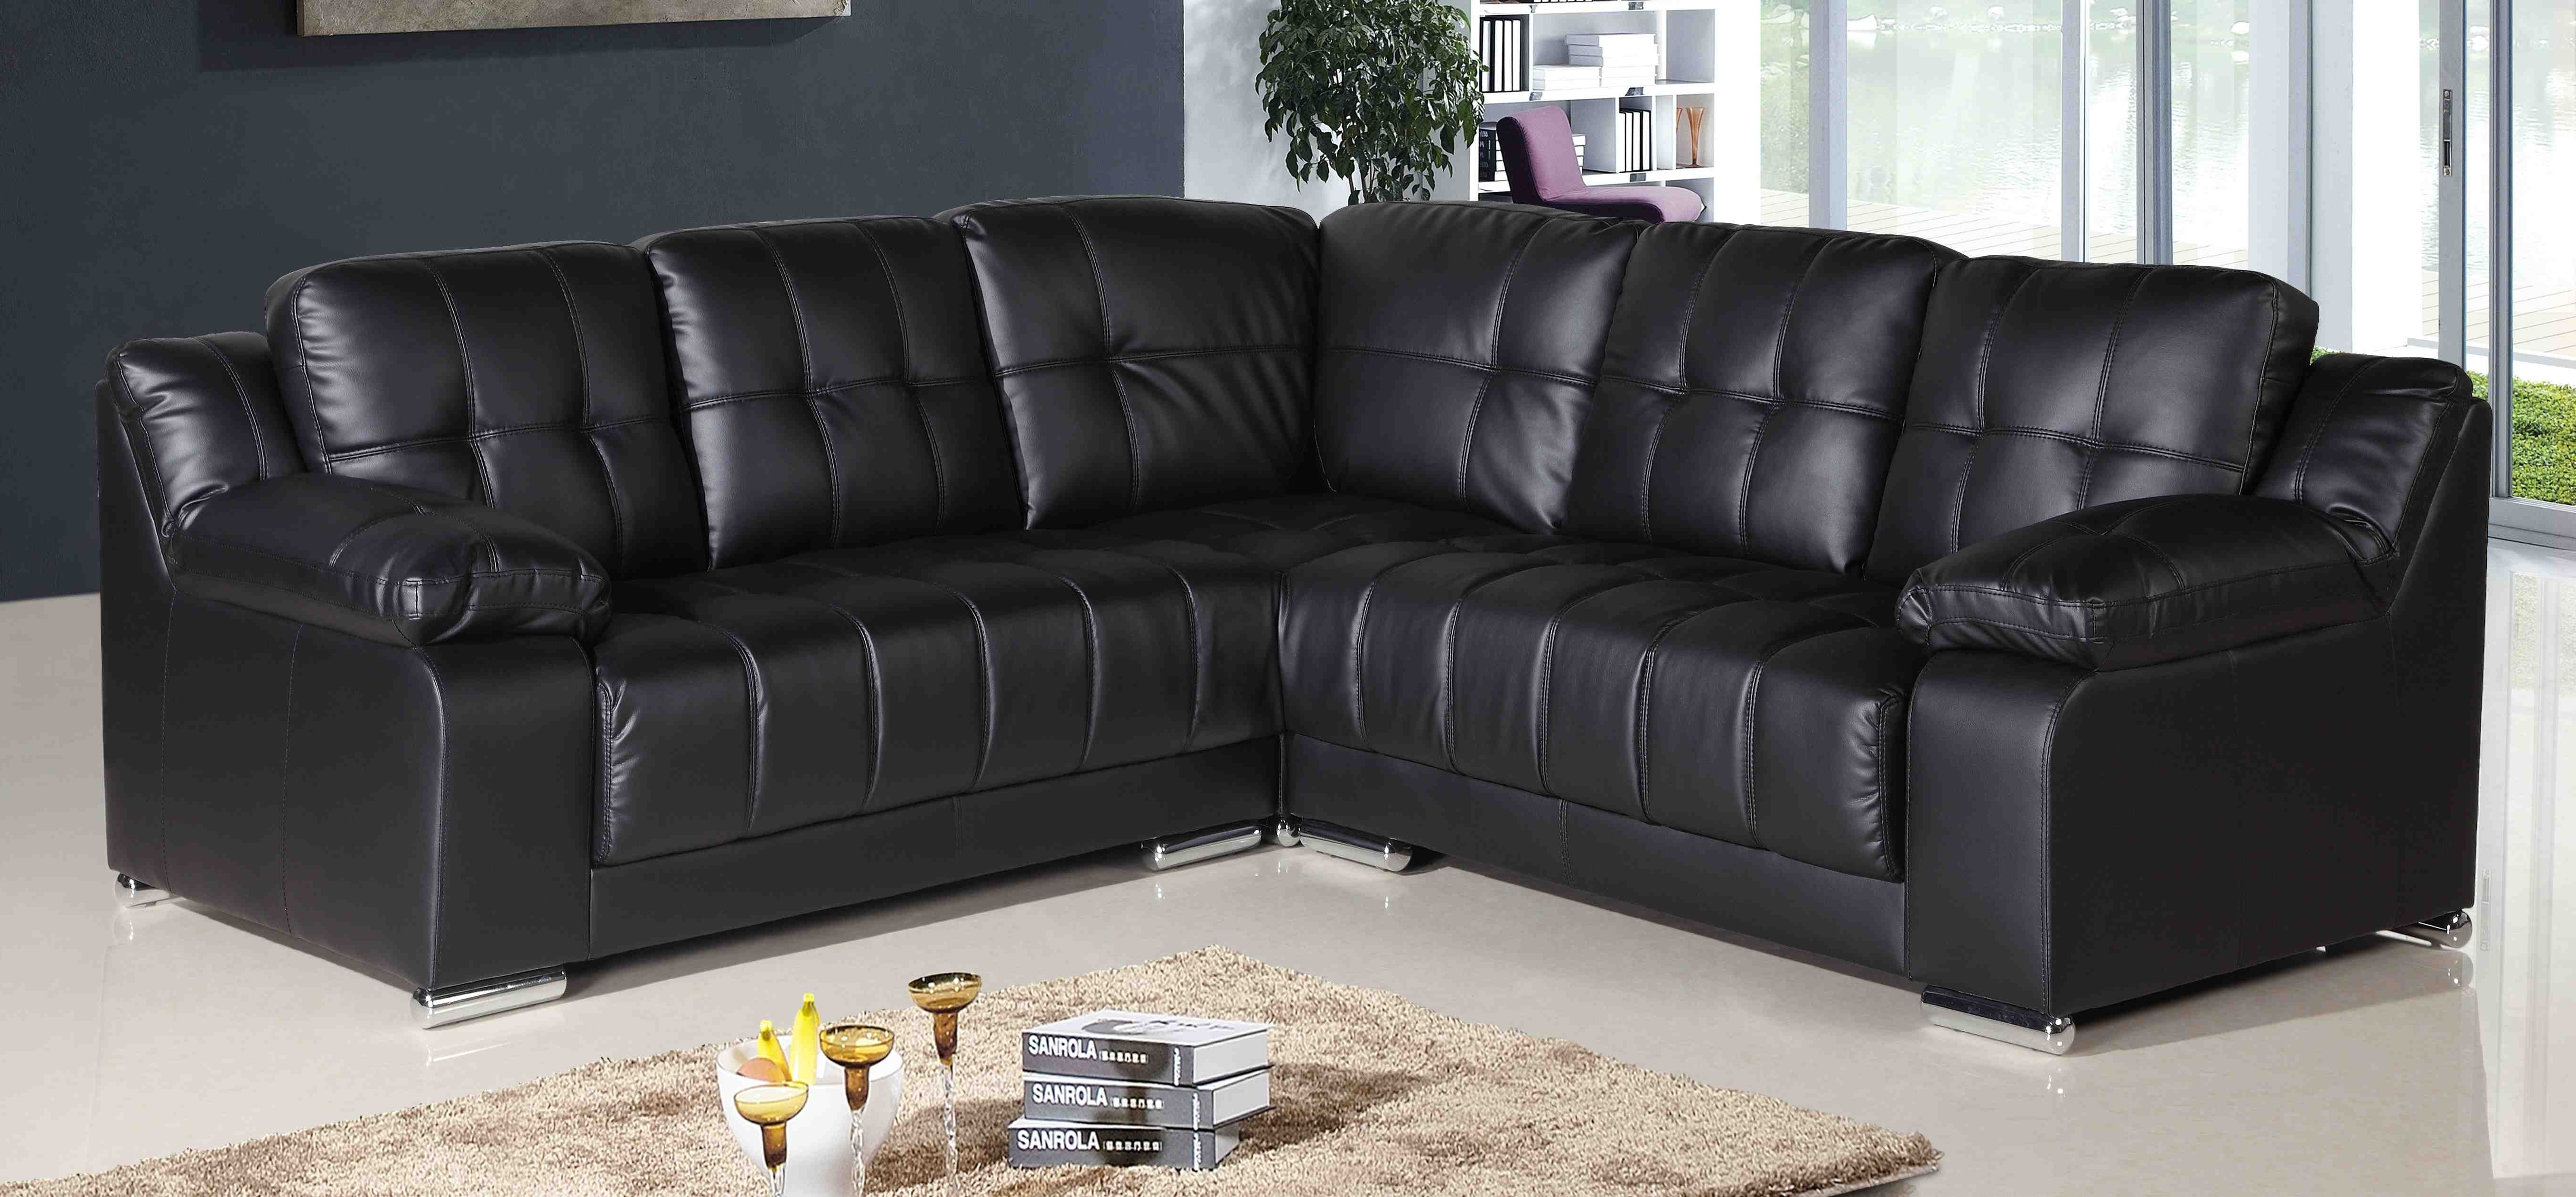 Popular Leather Corner Sofas In Extra Long Leather Corner Sofas • Leather Sofa (View 4 of 15)